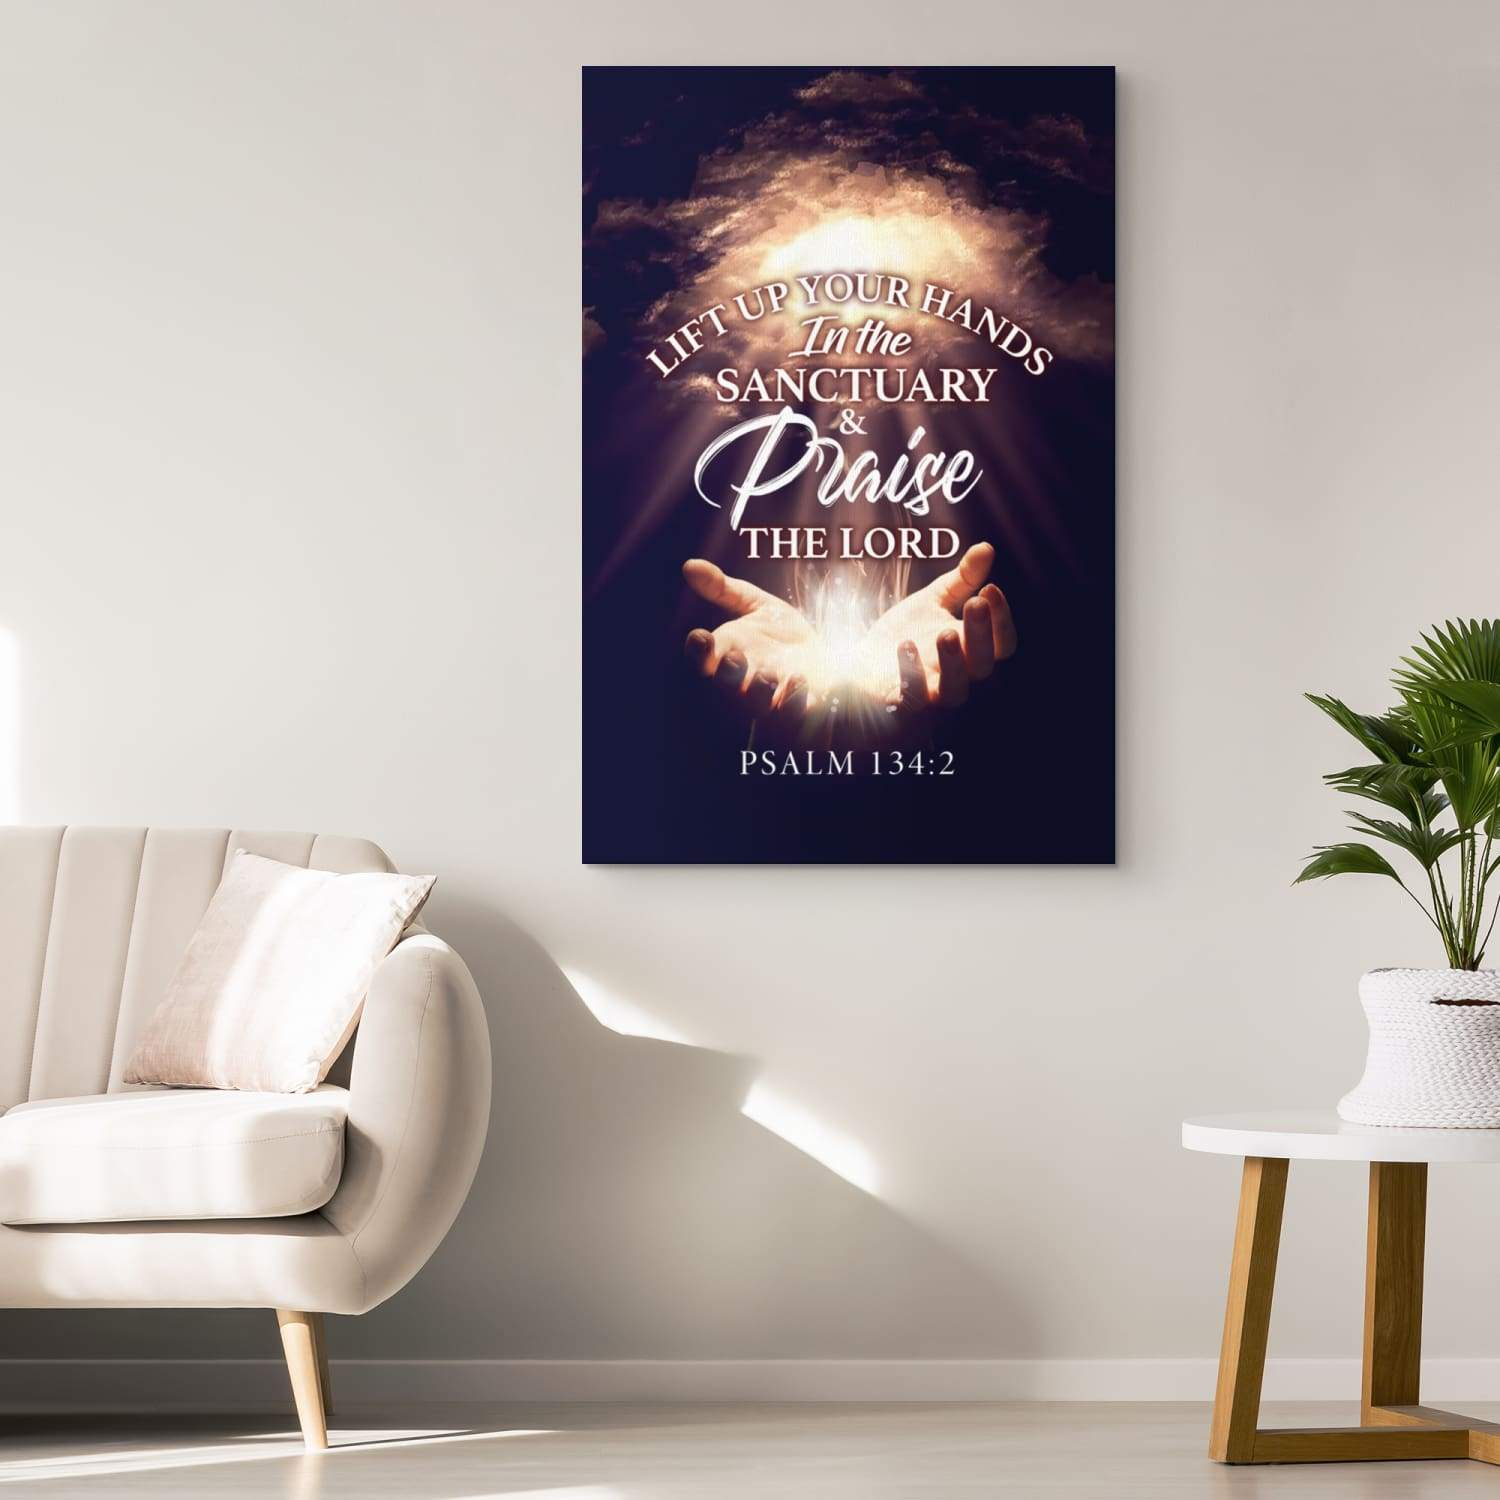 Psalm 134:2 Lift up your hands in the sanctuary and praise the Lord canvas wall art - GnWarriors Clothing